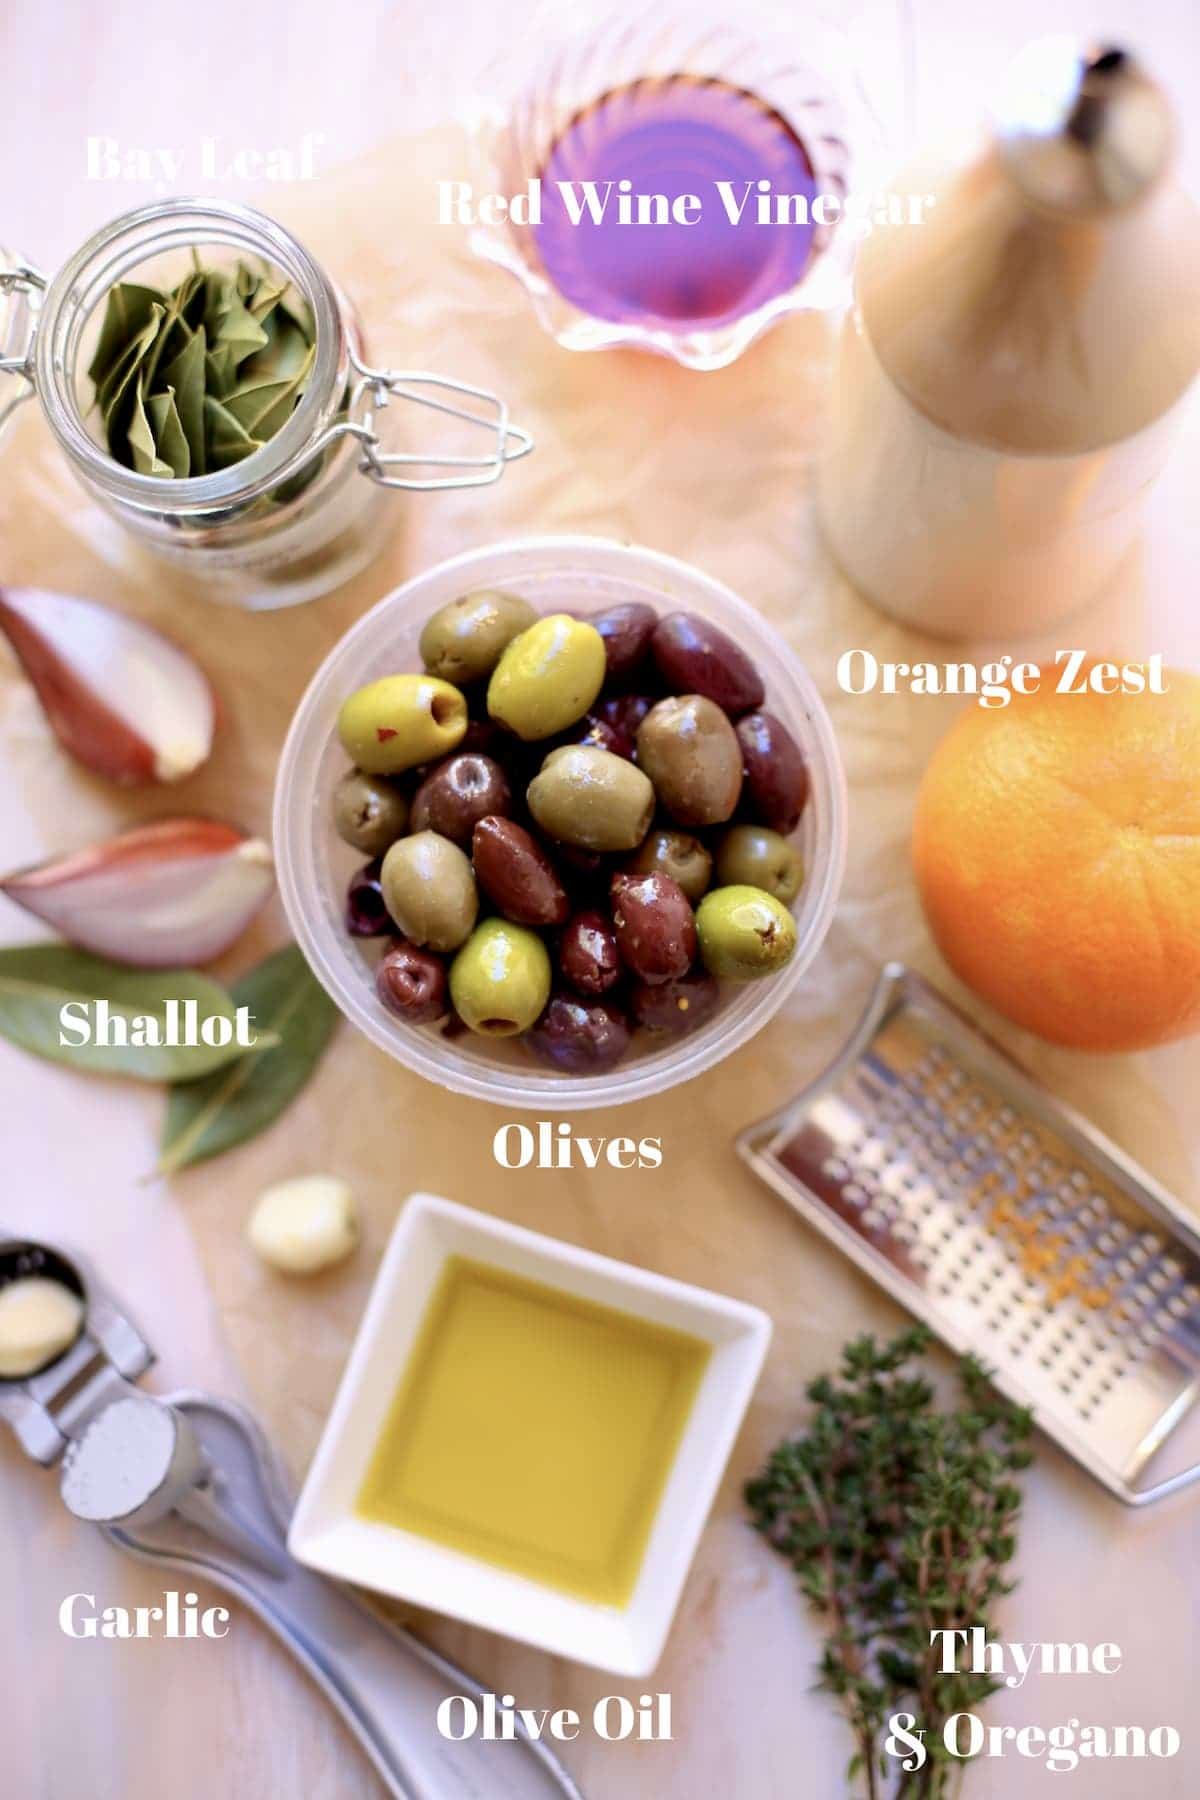 olives, orange, bay leaves, olive oil, shallot, thyme on on table with text underneath